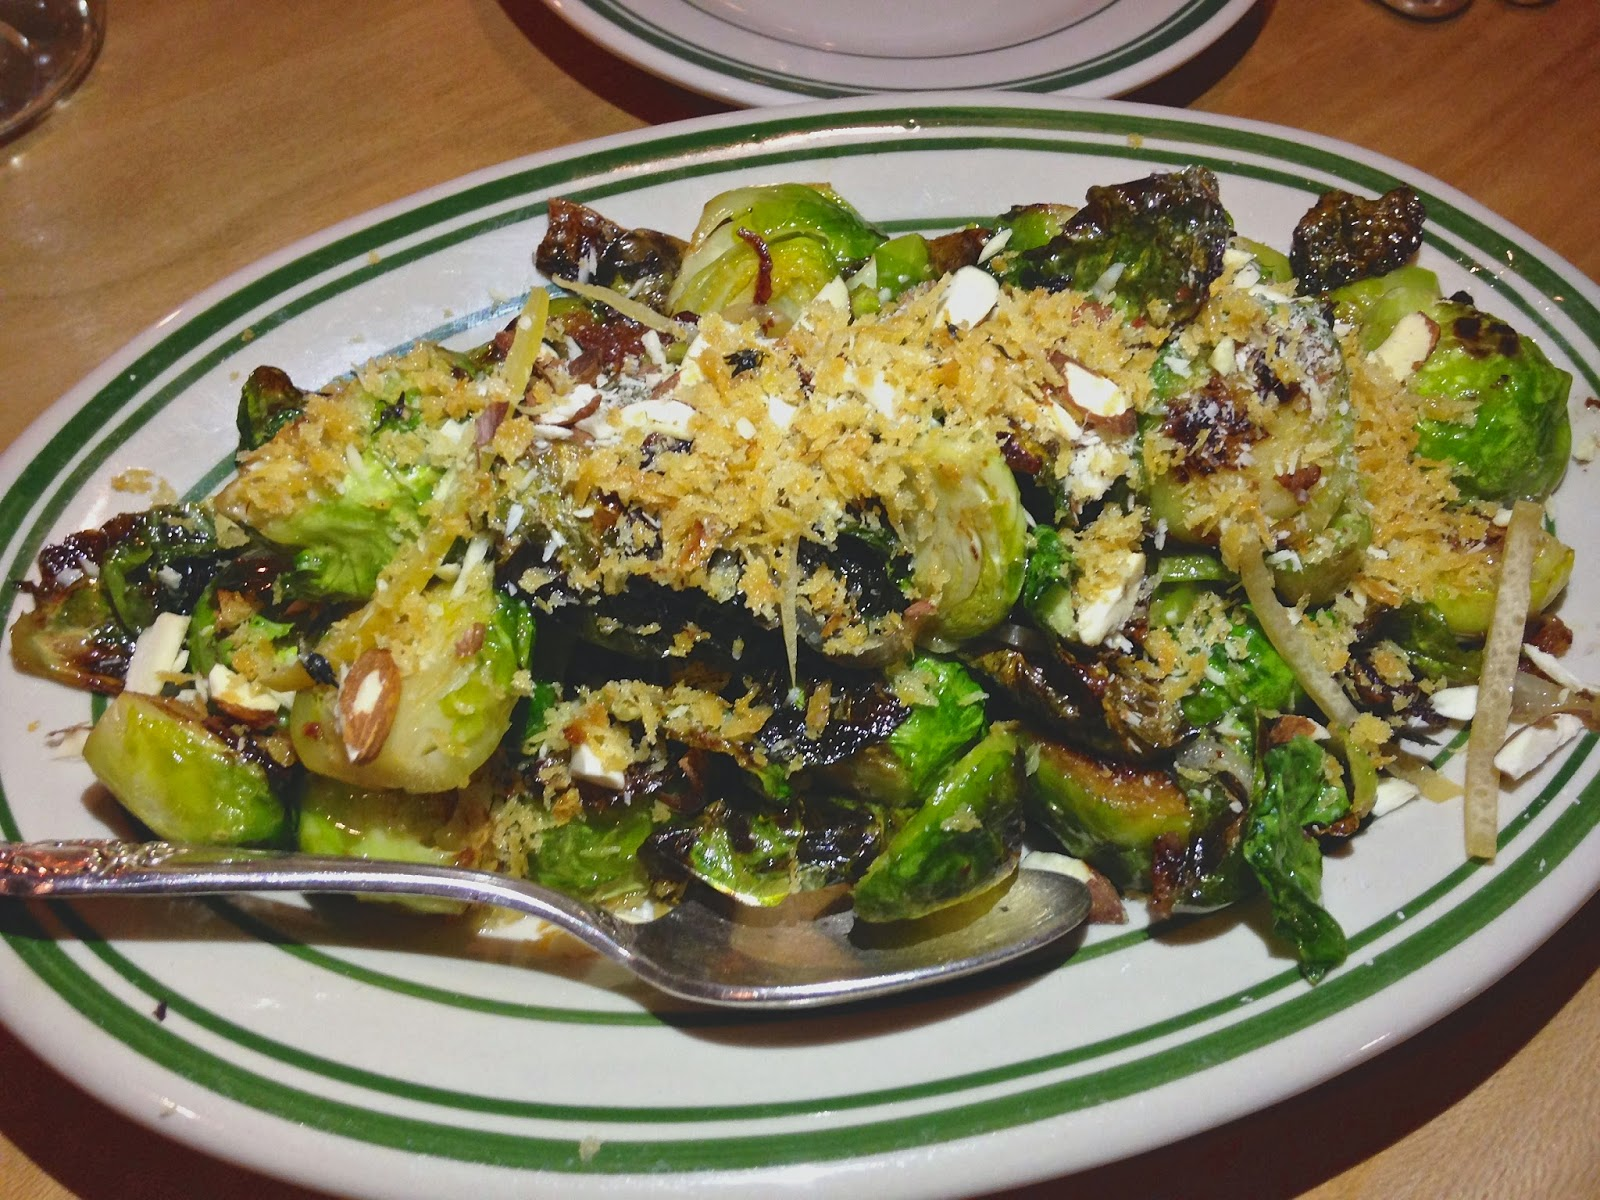 Brussels Sprouts, Garlic, Shallot, Almond, Preserved Lemon